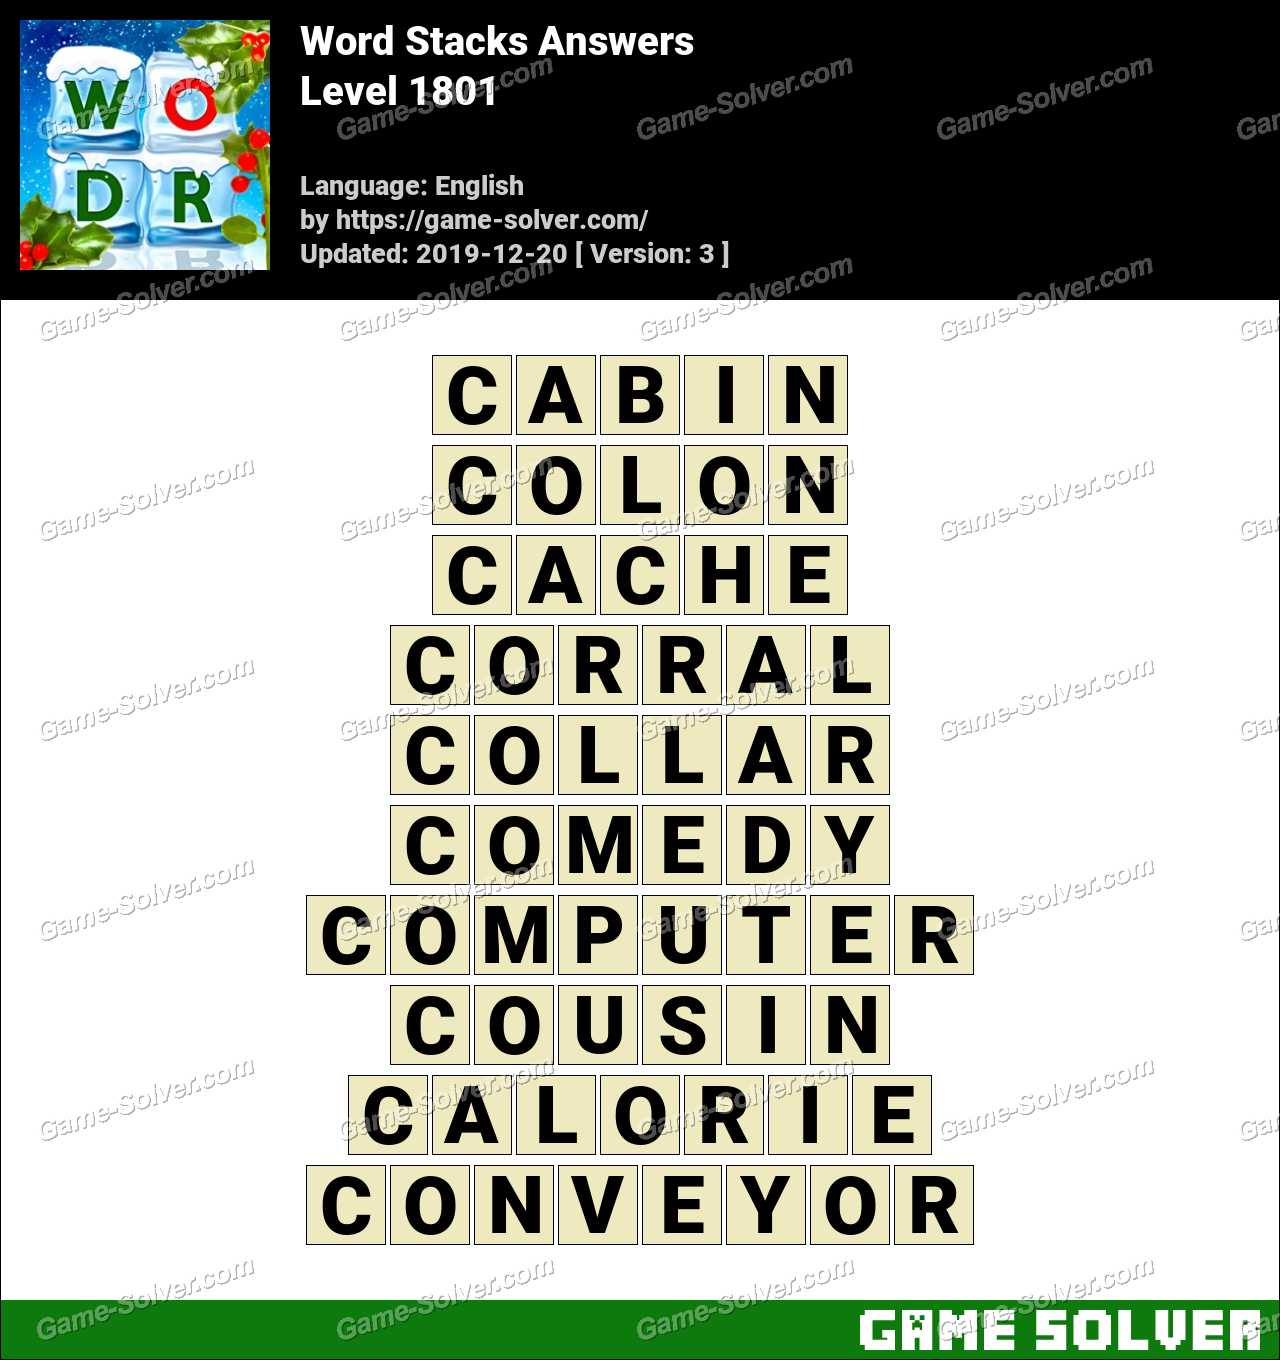 Word Stacks Level 1801 Answers